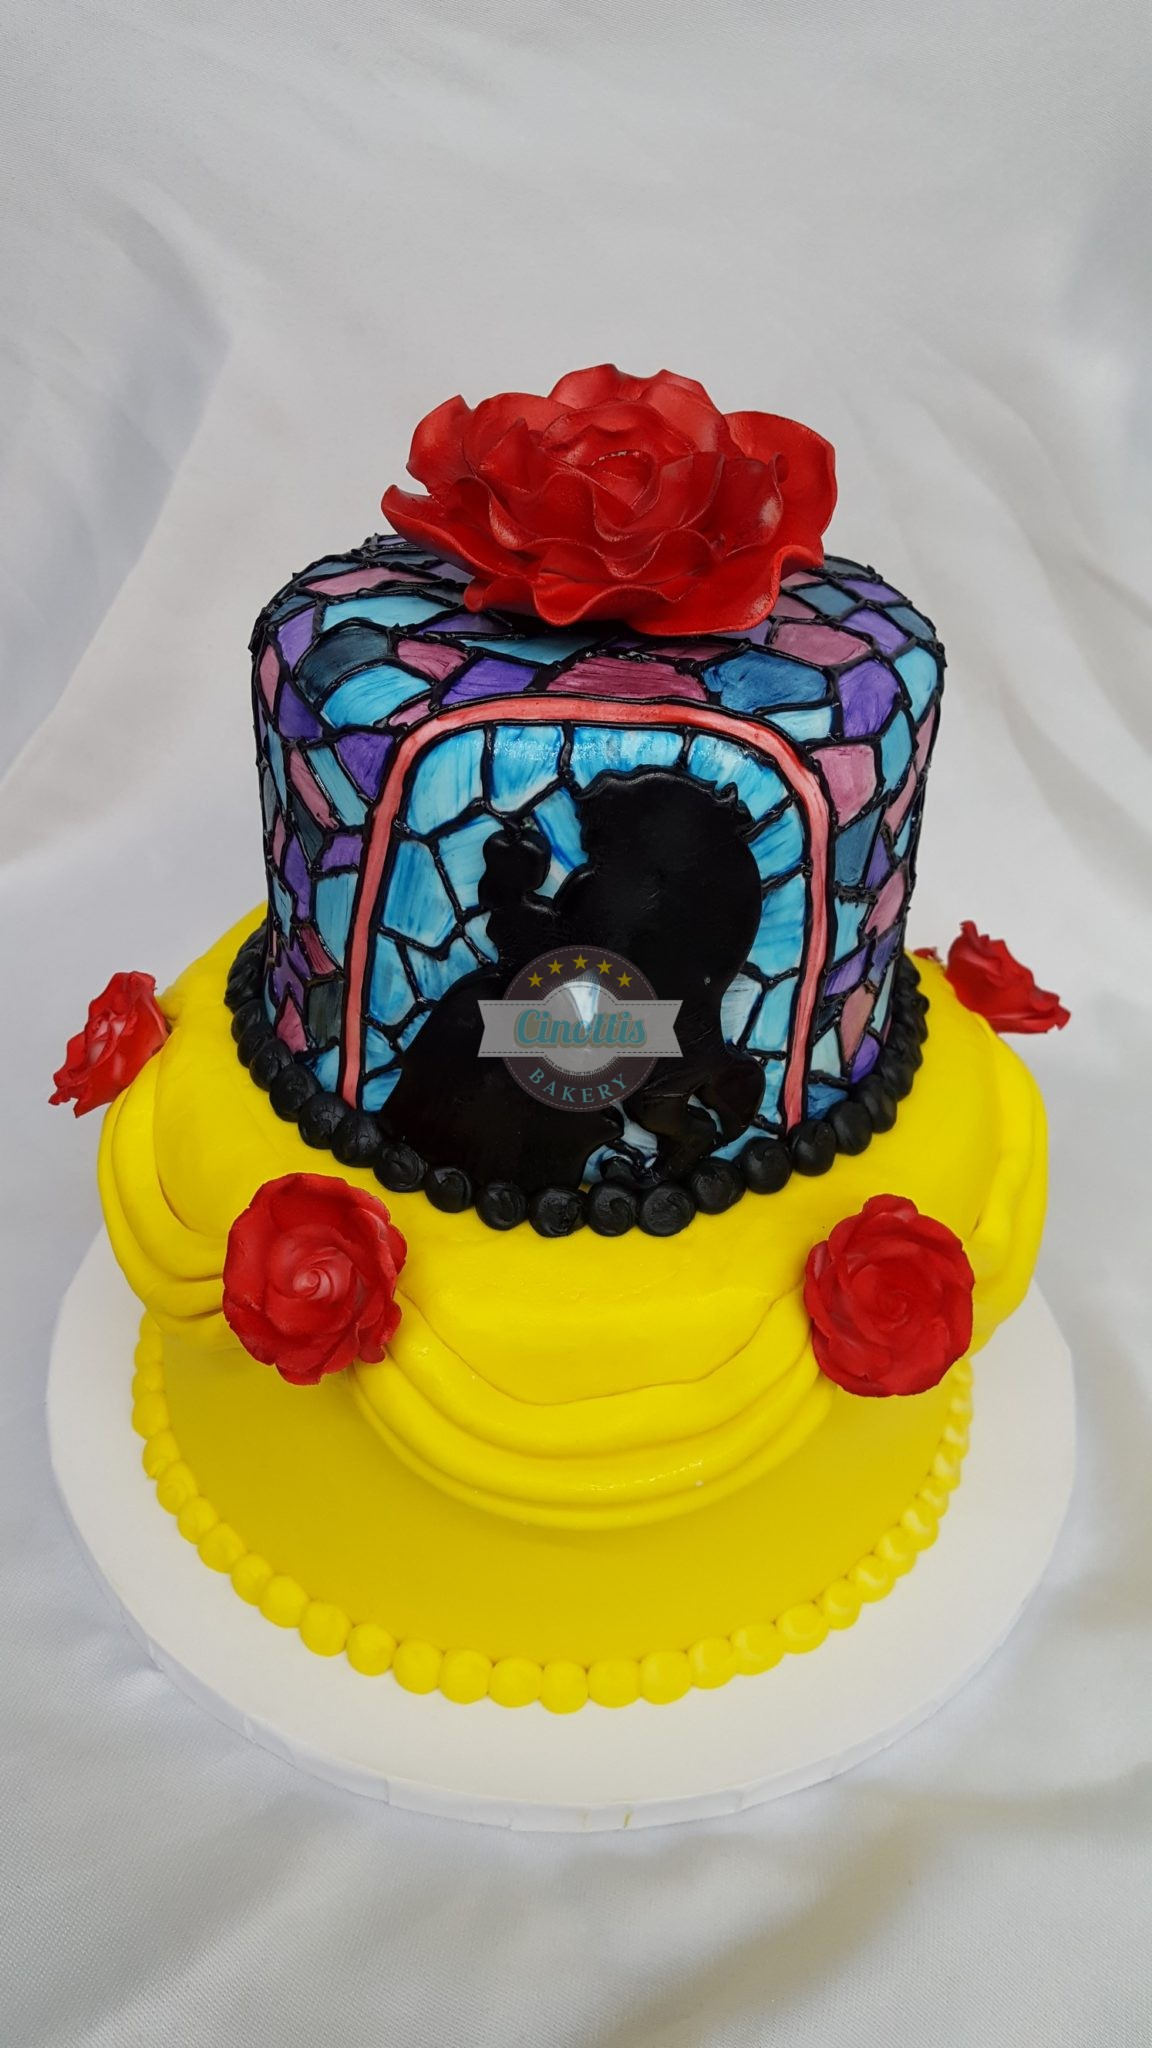 Beauty and the Beast, Stained Glass, Gold, Banners, Roses, Red, Fondant, Buttercream, Bakery, Jacksonville, Beach, Florida, Cinotti